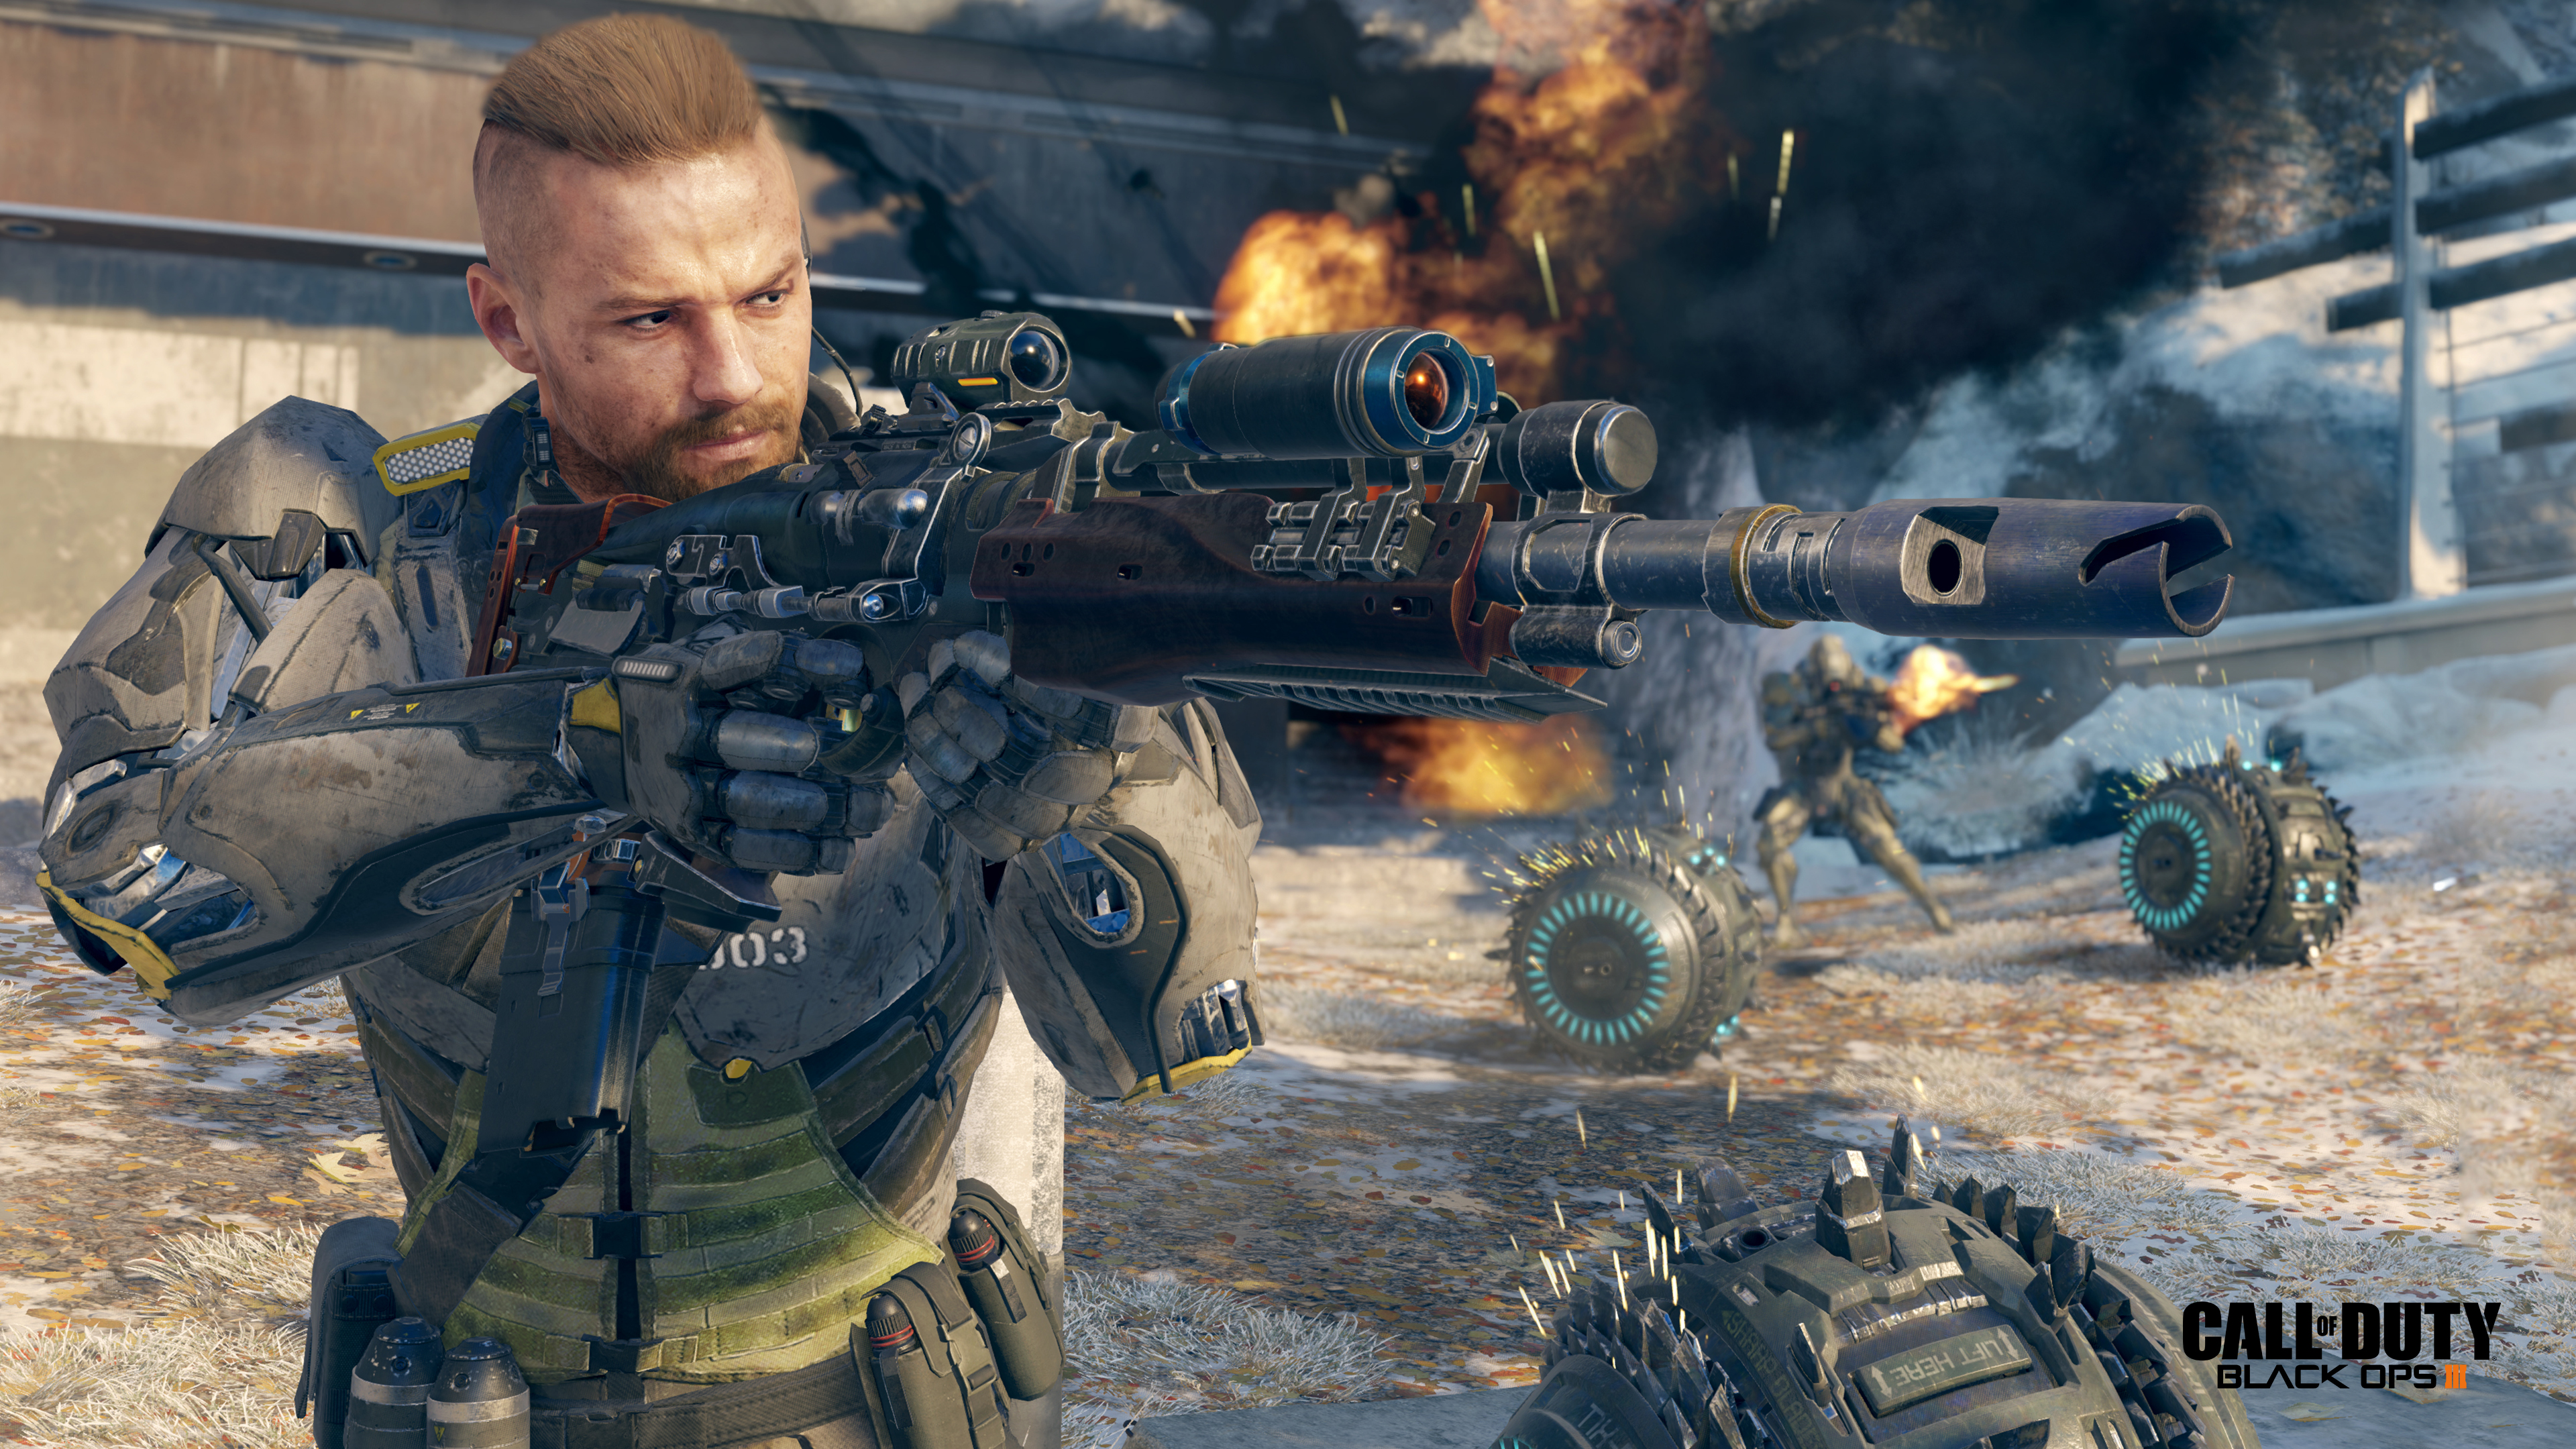 Images Call Of Duty Sniper Rifle Rifles Soldier Men Black 3840x2160